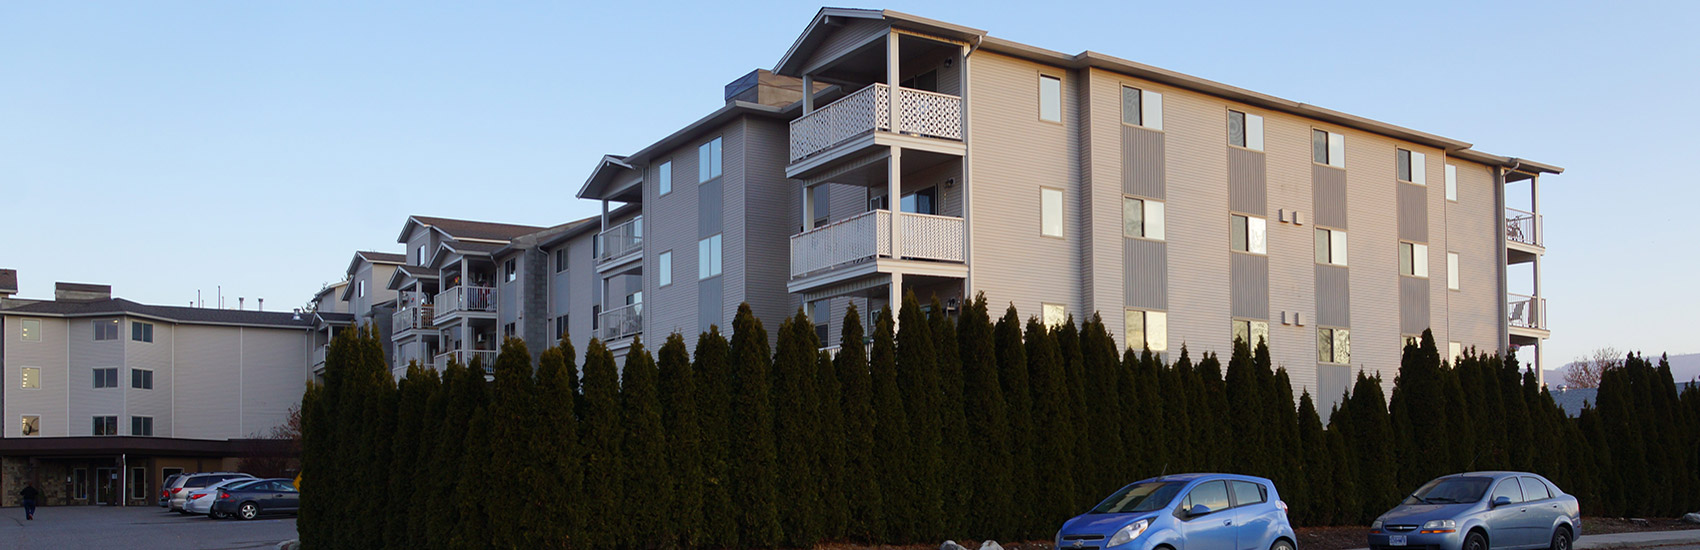 Rental Application Form Spring Valley West Apartmentskelowna Bc